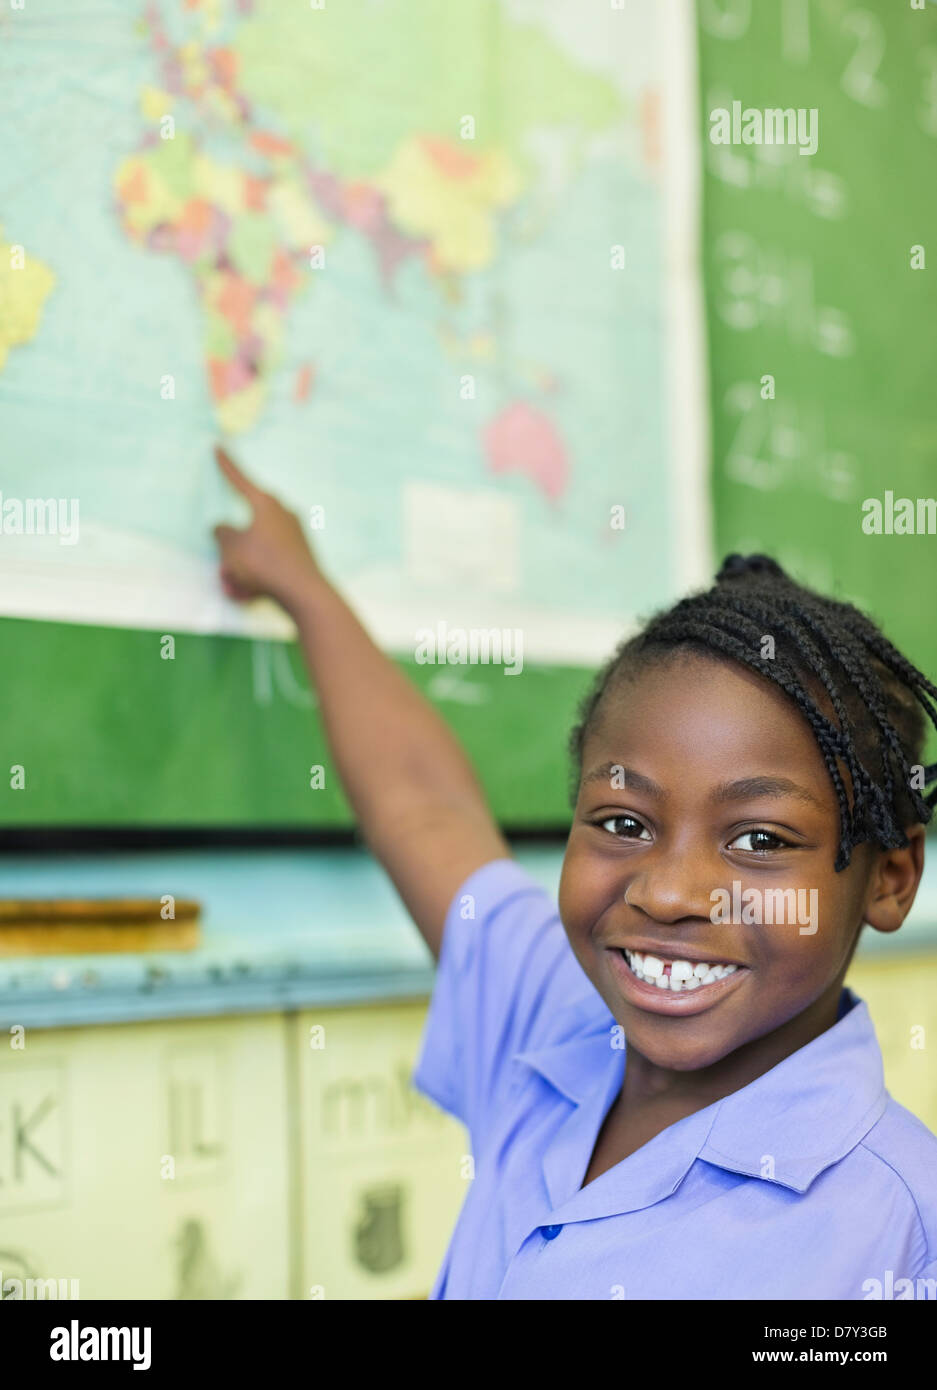 Étudiant en utilisant la carte du monde en classe Photo Stock